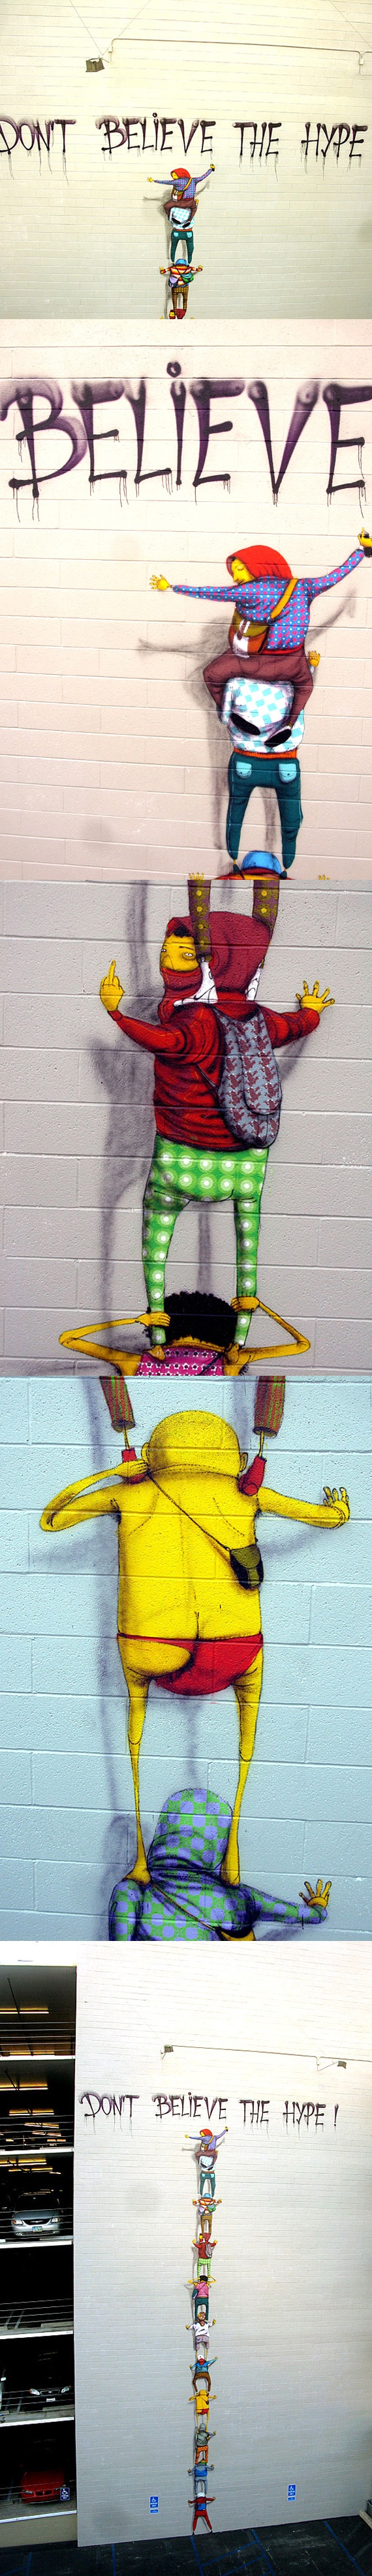 ..._Os Gêmeos, Don't Believe The Hype, San Diego by the Brazilian twin brothers and street artists Os Gêmeos